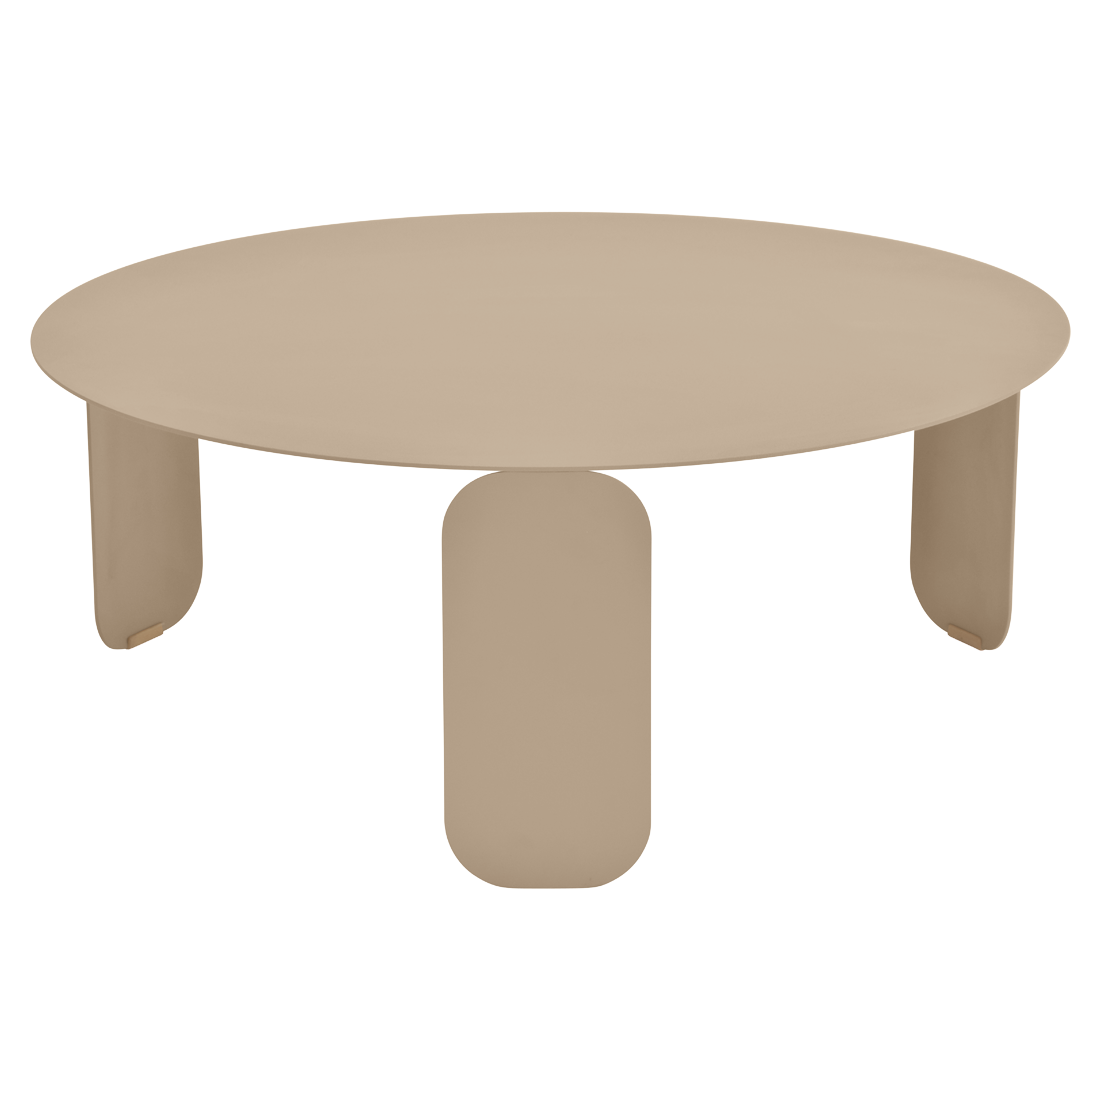 FERMOB Bebop Round Low Table (3 sizes)